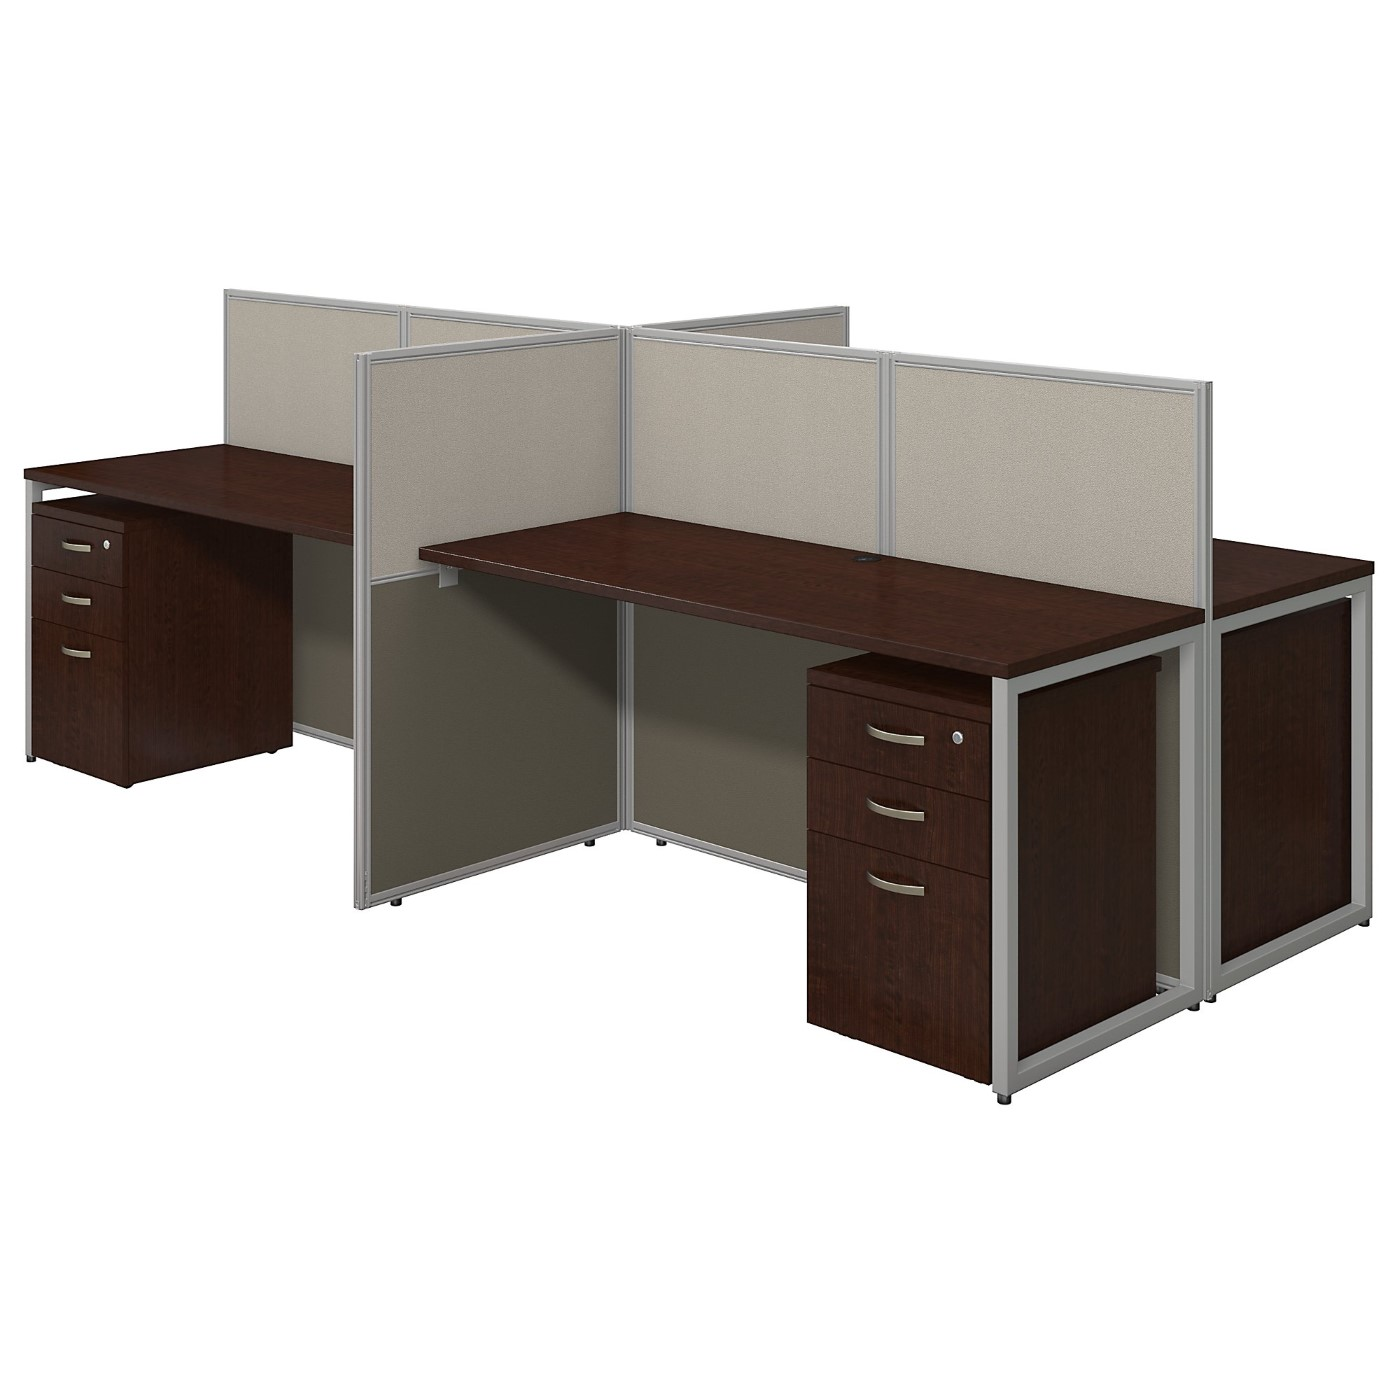 BUSH BUSINESS FURNITURE EASY OFFICE 60W 4 PERSON CUBICLE DESK WITH FILE CABINETS AND 45H PANELS. FREE SHIPPING